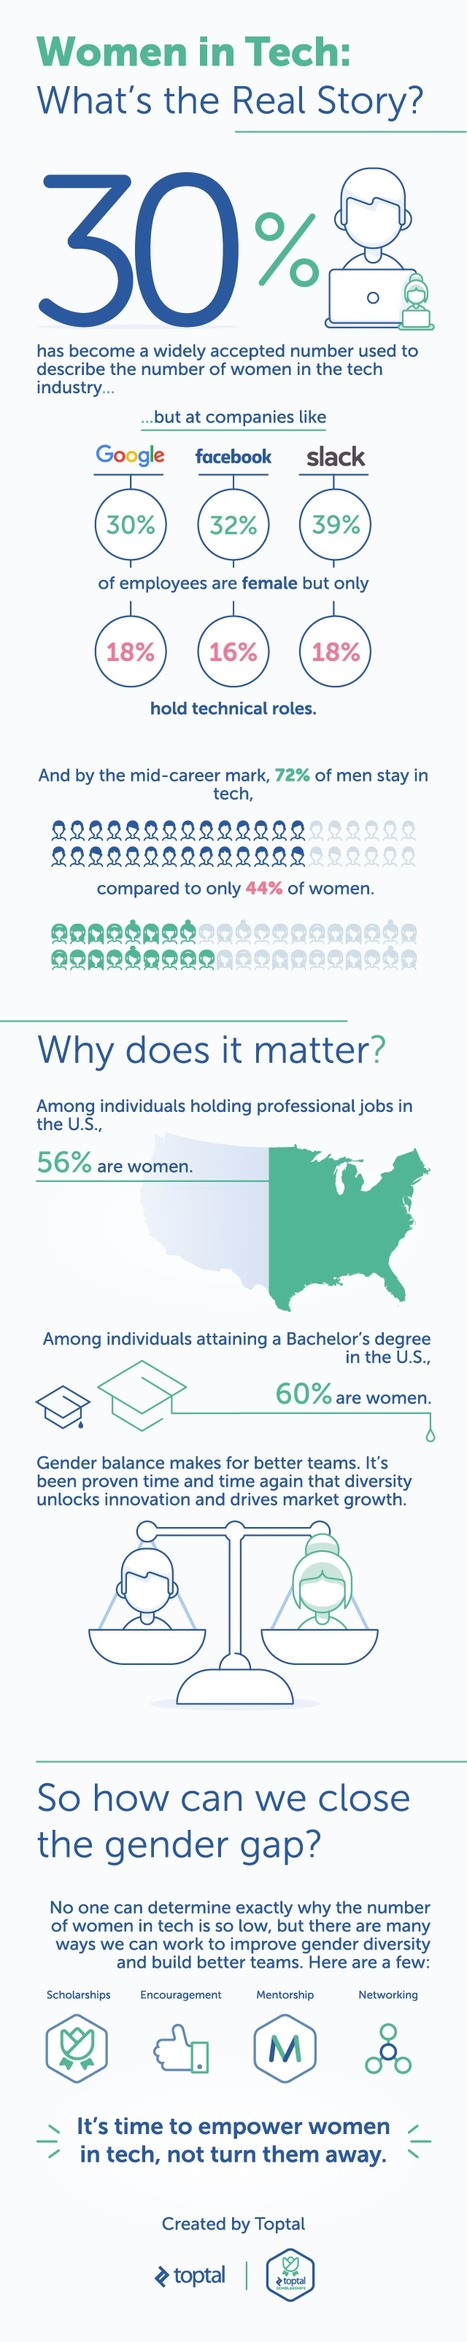 Women in Tech - The Real Story | EPIC Infographic | Scoop.it